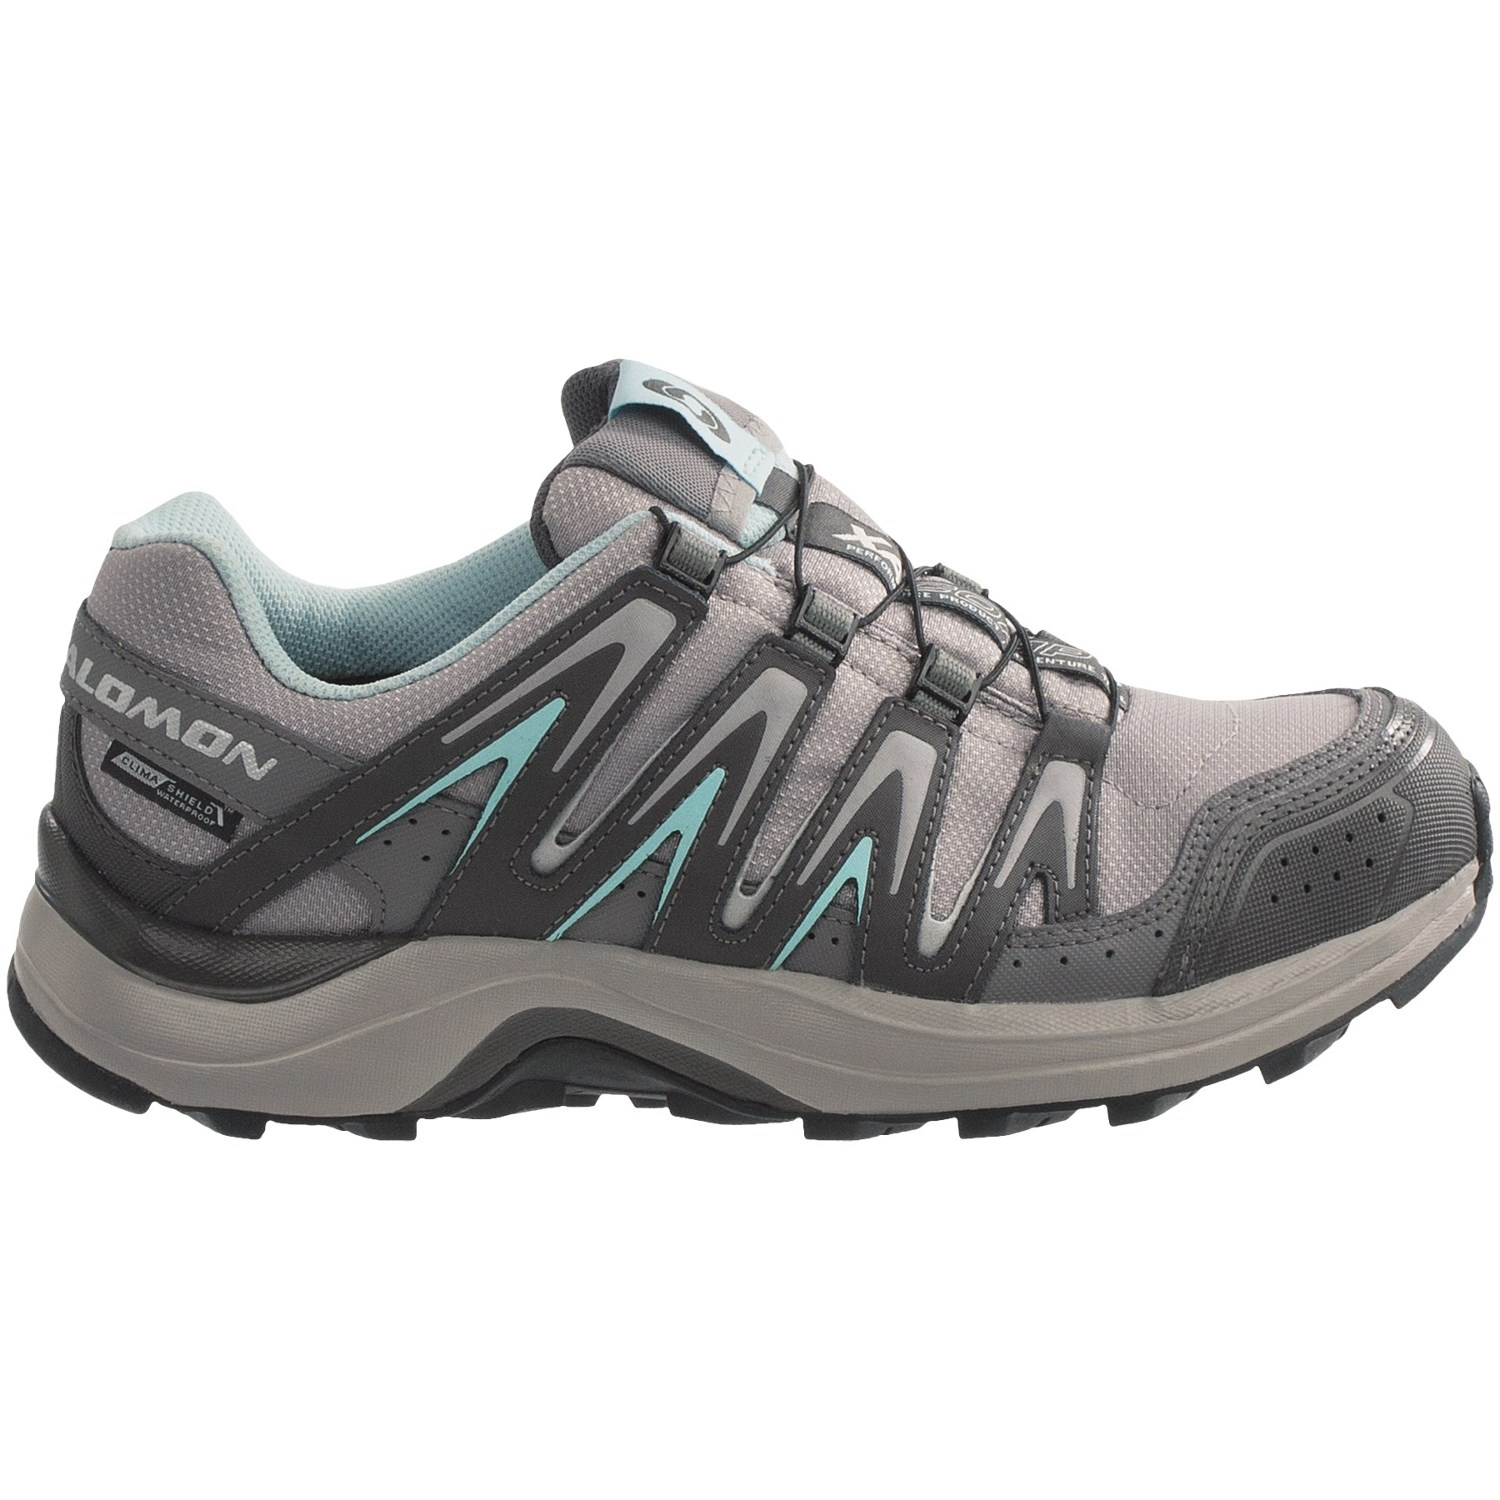 Trail Running Shoes Tucson